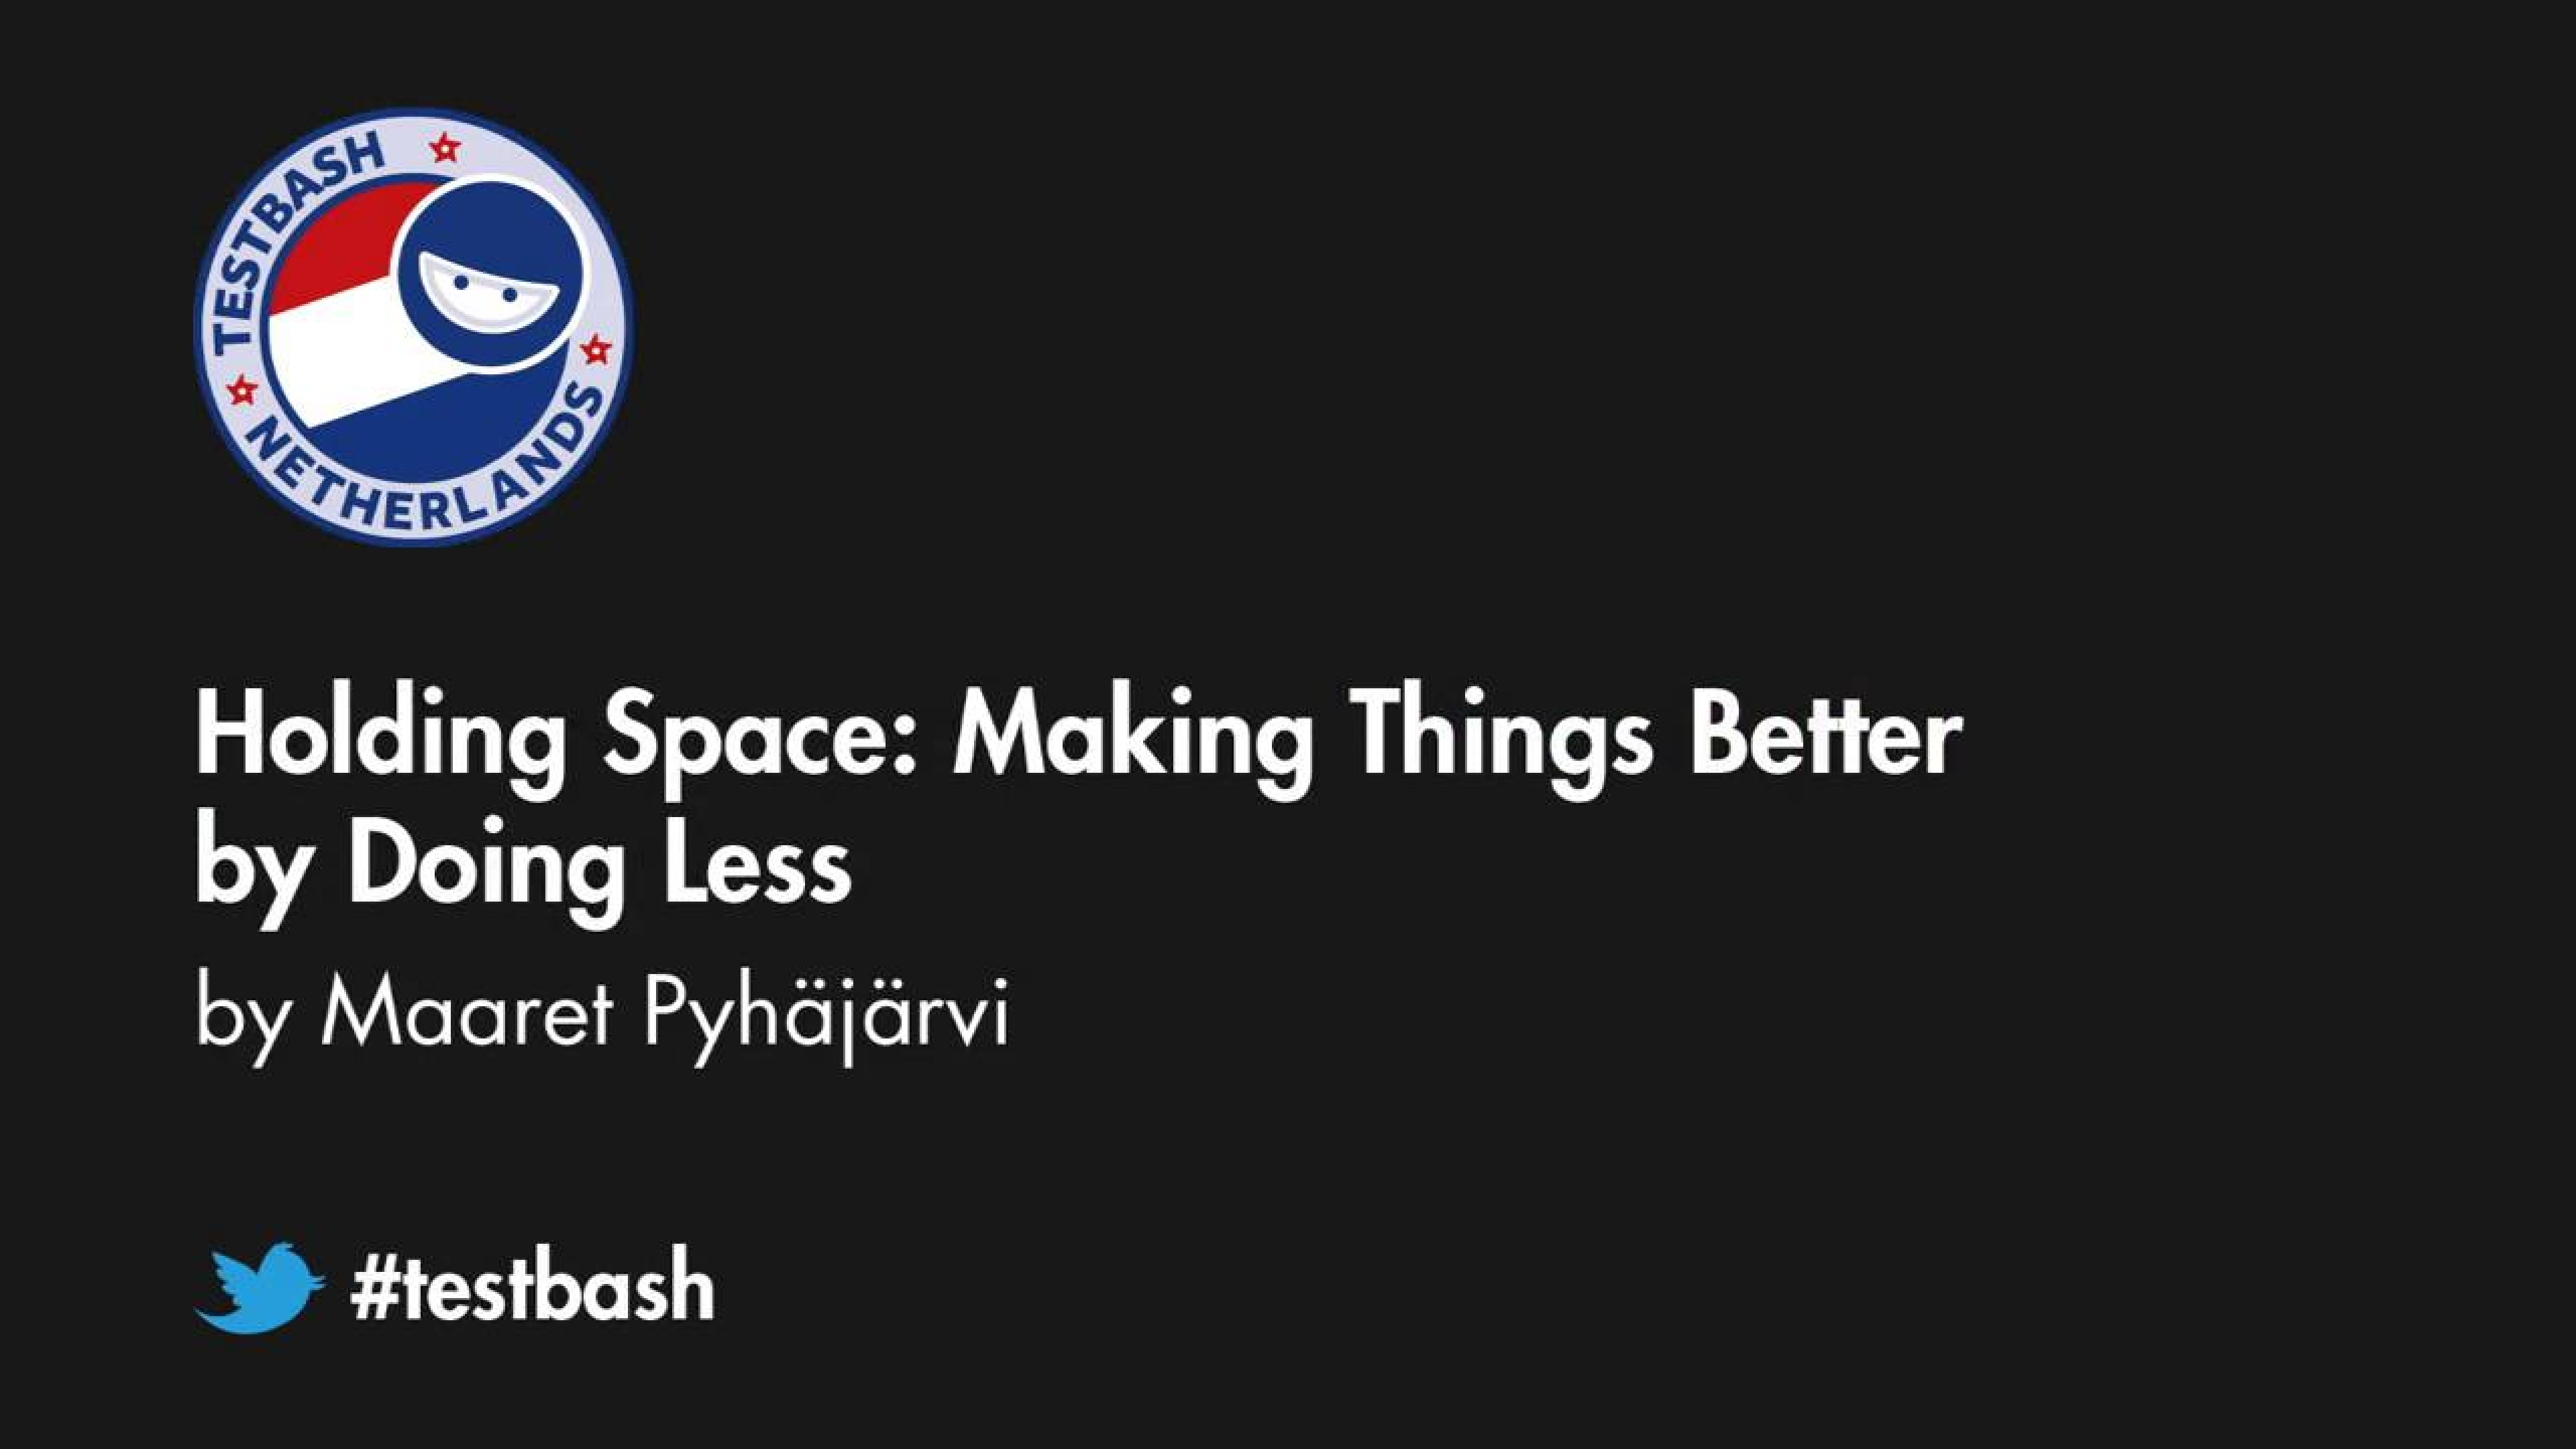 Holding Space: Making Things Better by Doing Less - Maaret Pyhäjärvi